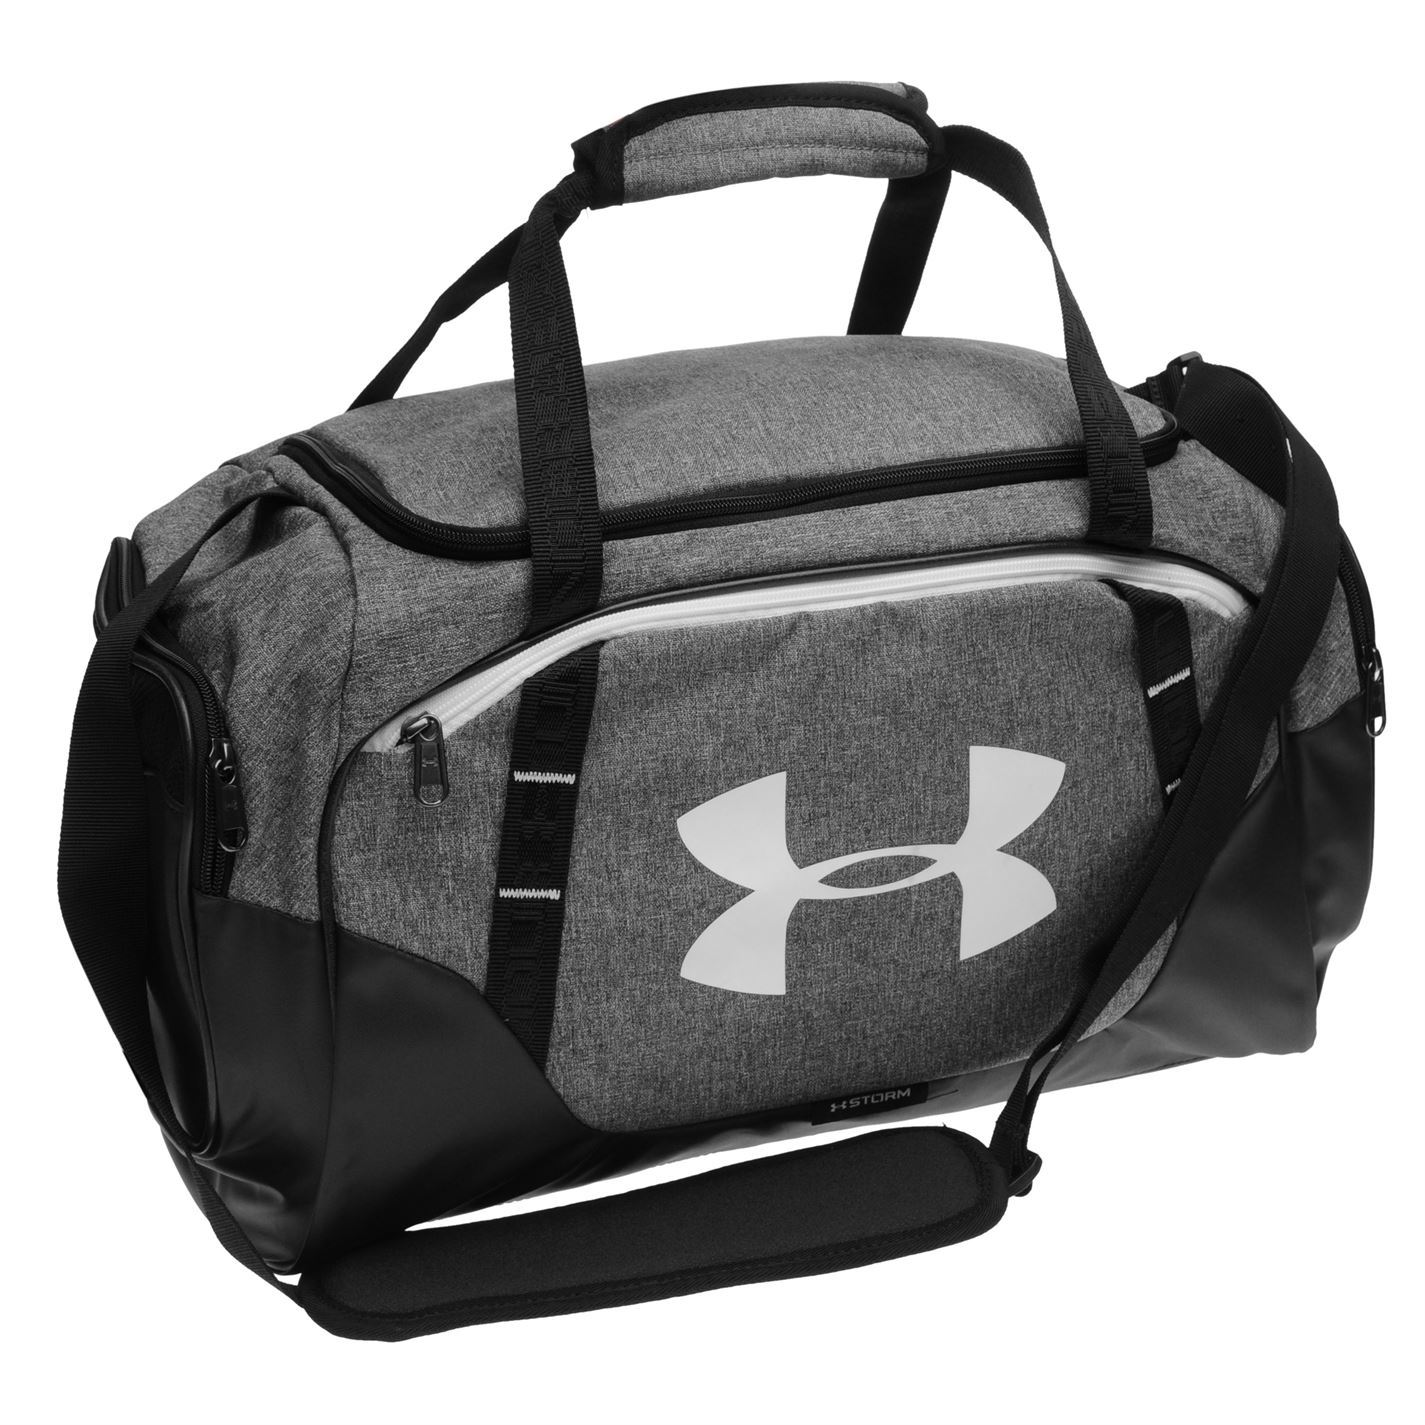 6462f0ed059 Details about Under Armour Undeniable 3 Duffle Bag Grey Kitbag Gymbag  Holdall Carryall